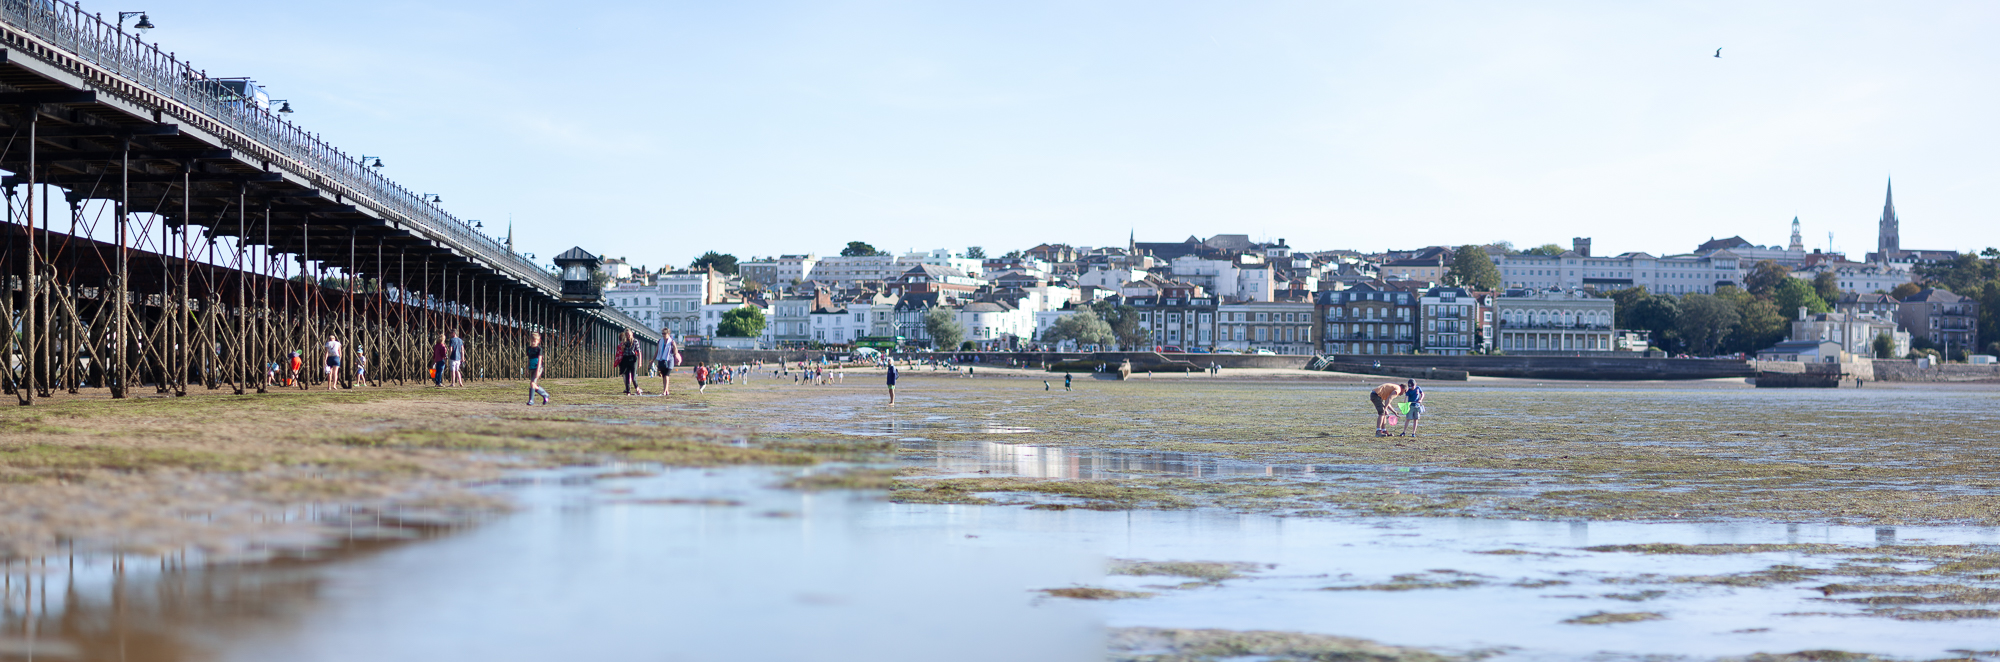 Ryde's historic townscape from the End of The Pier Pic by Julian Winslow